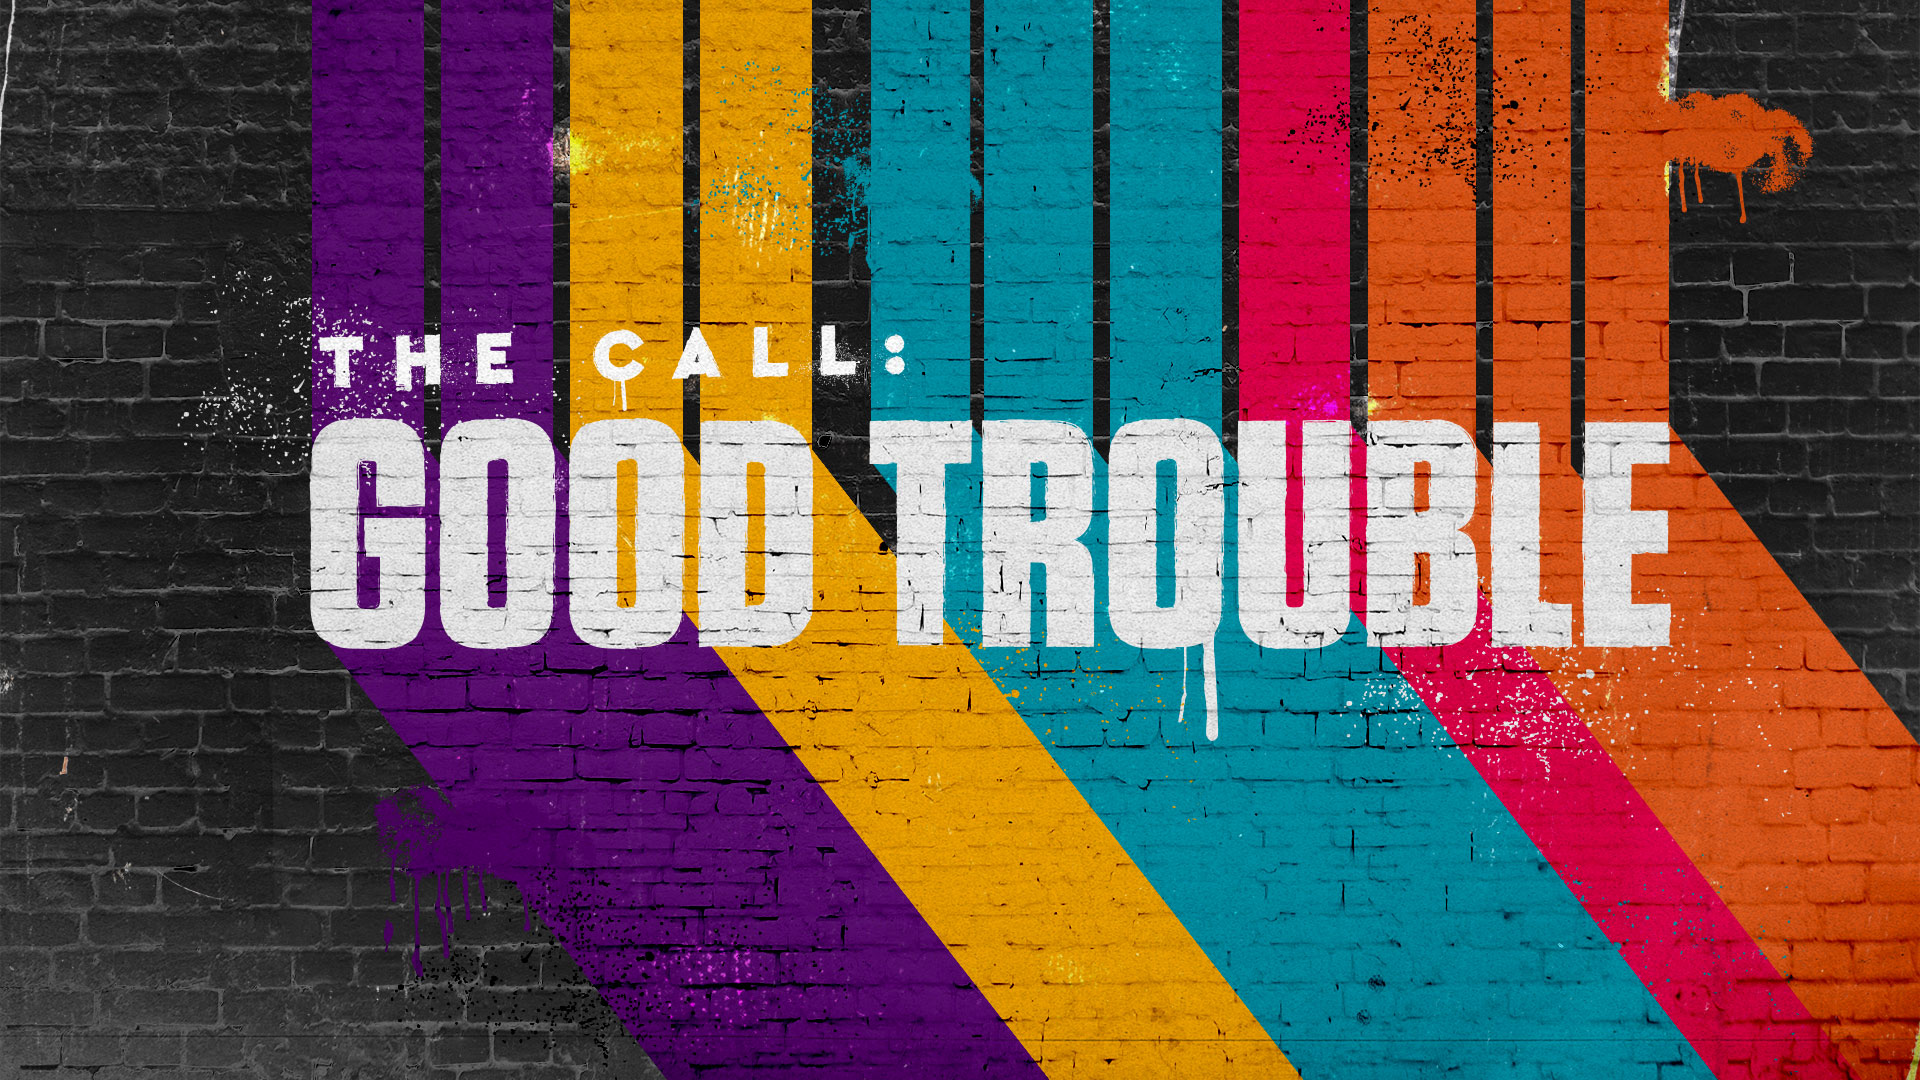 The Call: Good Trouble